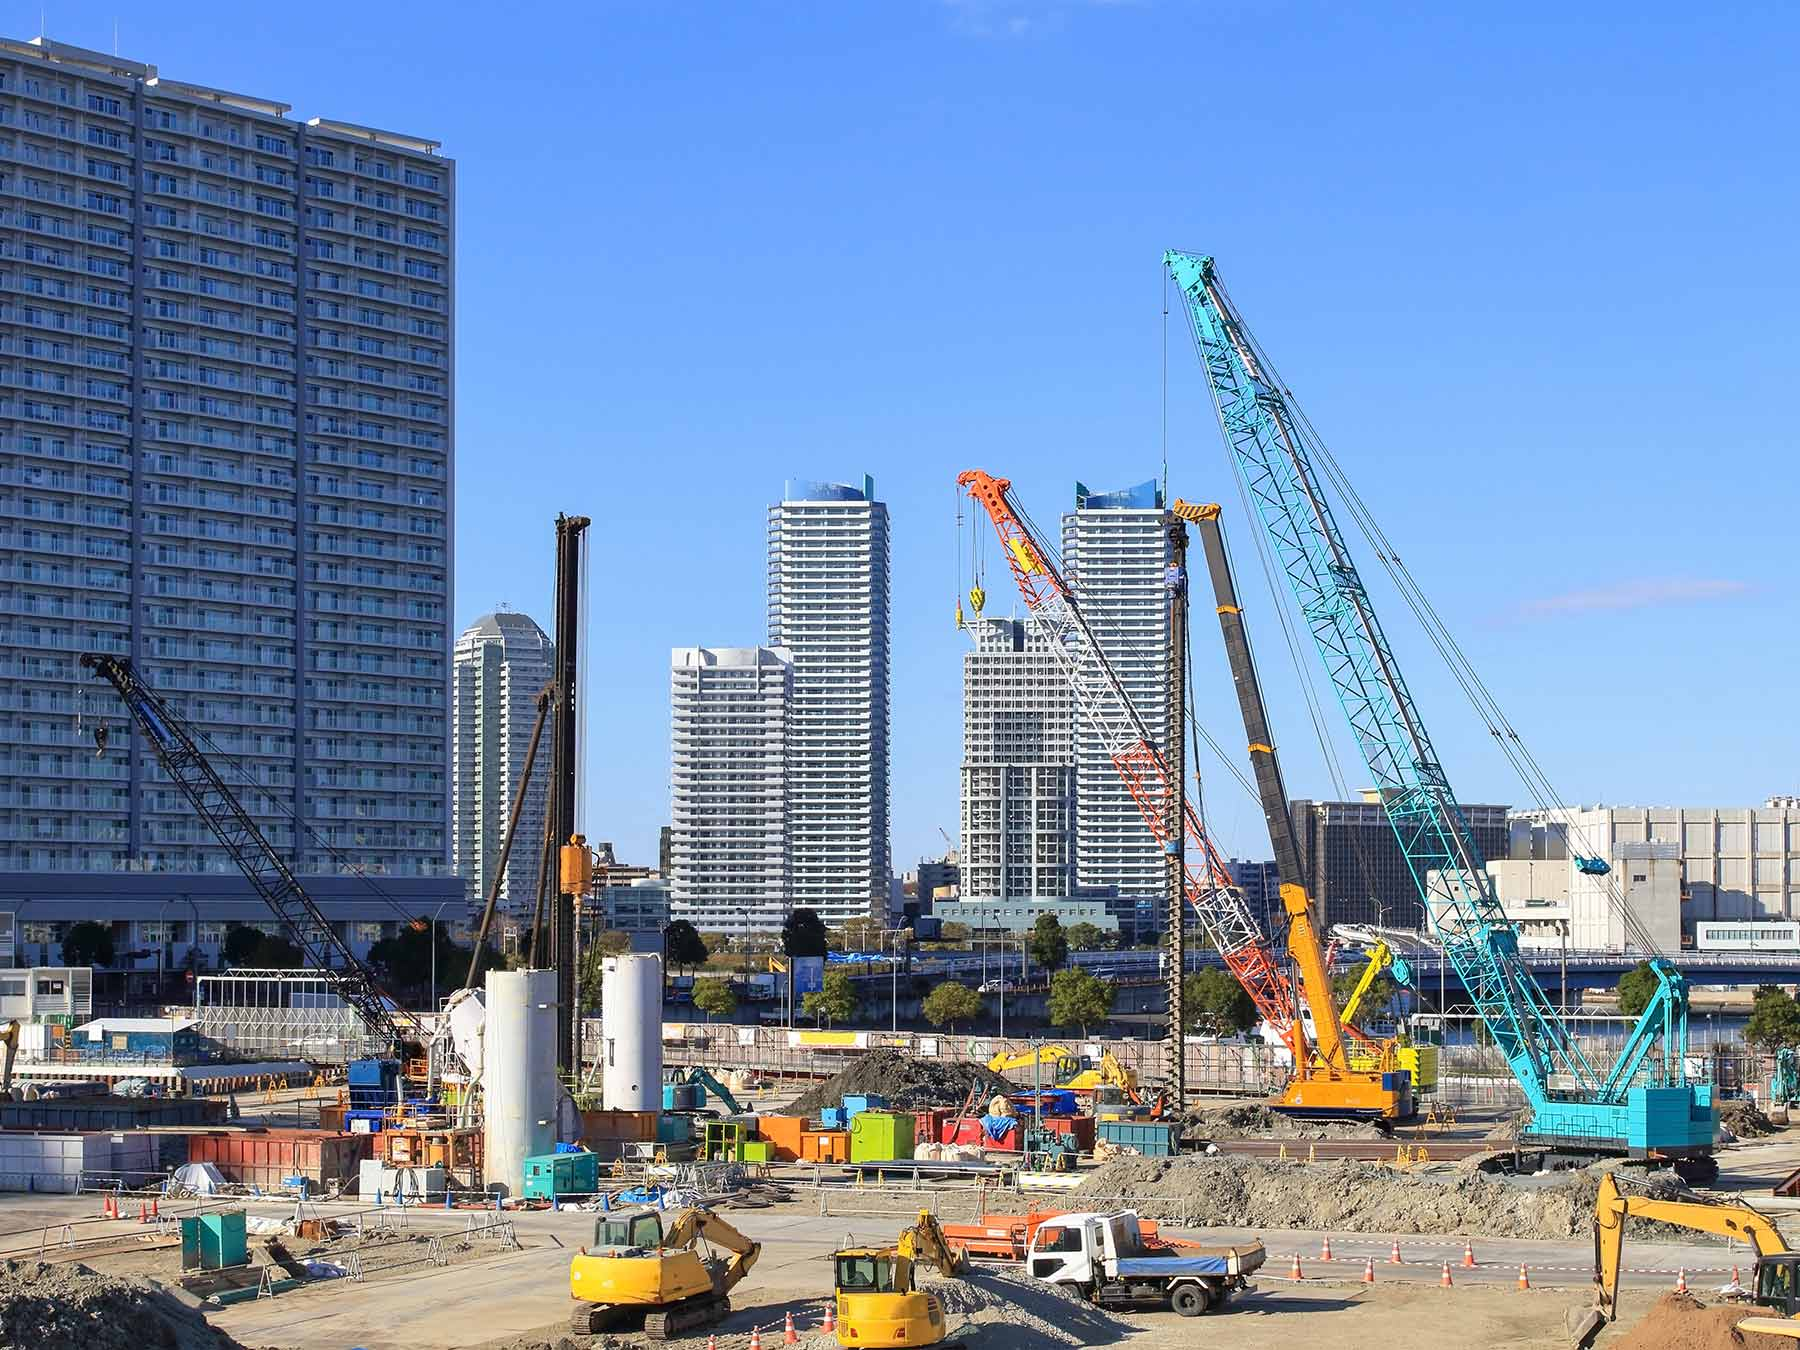 11 Types of Cranes Commonly Used in Construction